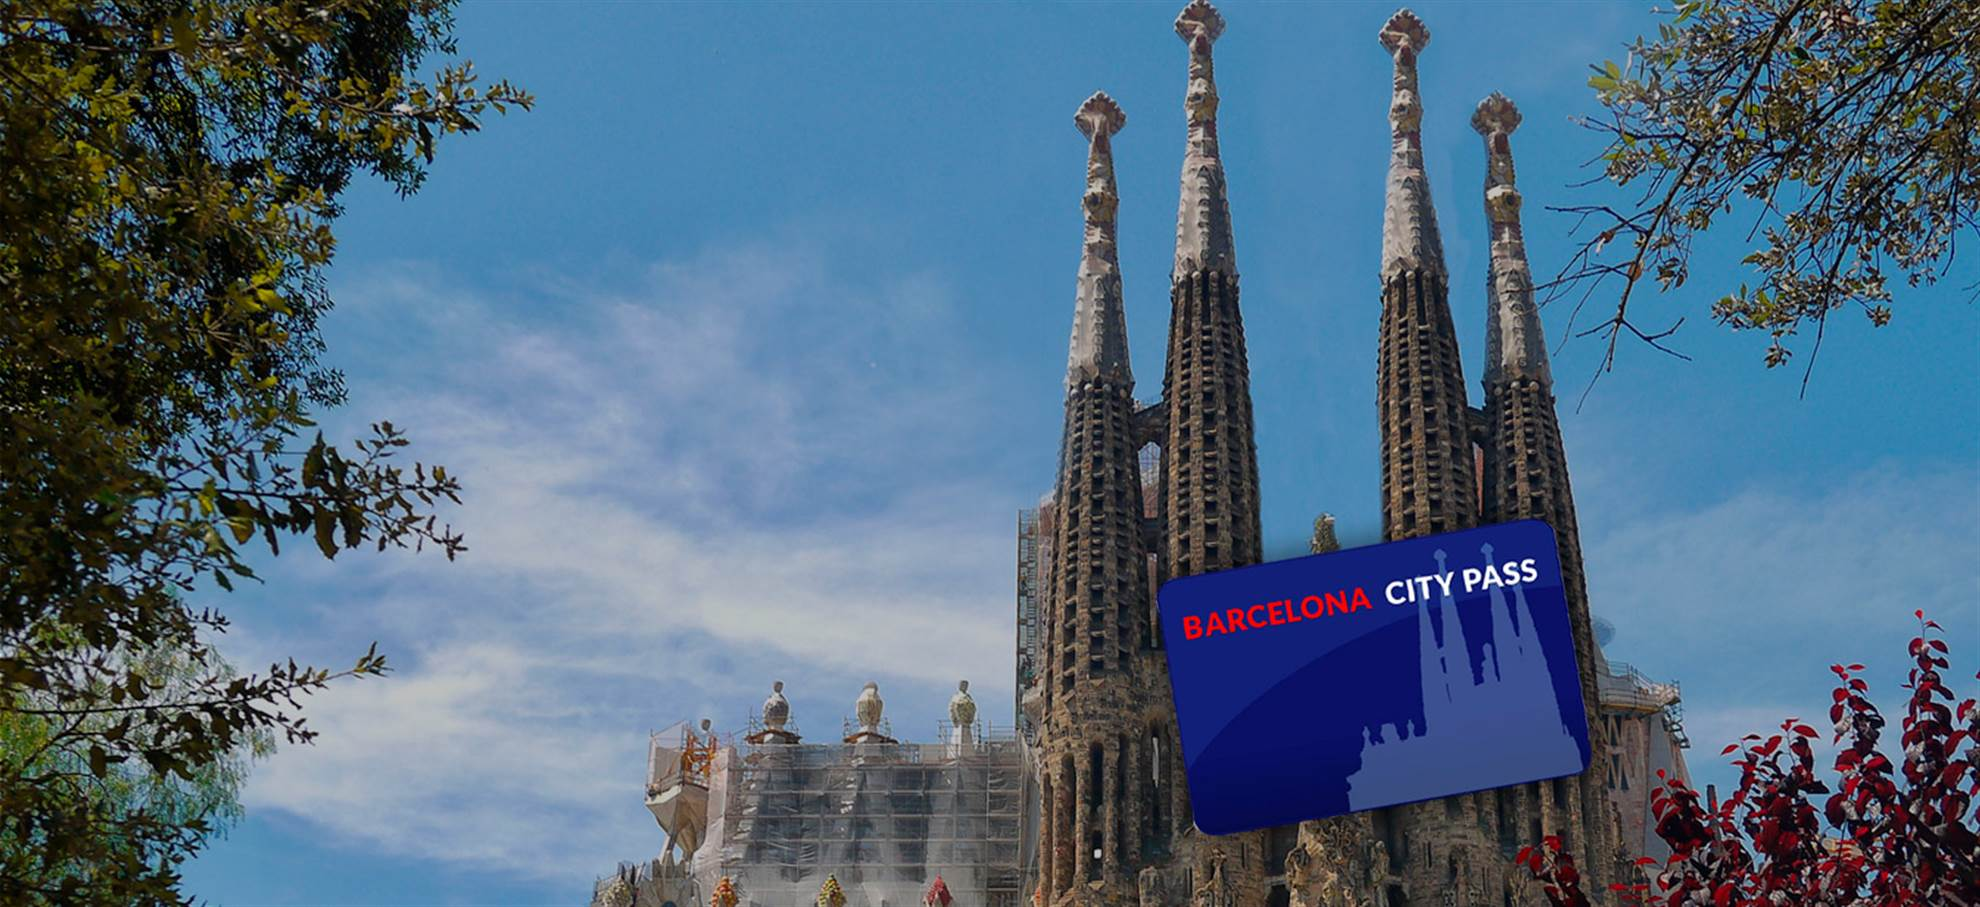 Barcelona City Pass (incl. Sagrada Familia y Parc Güell) + Audioguía